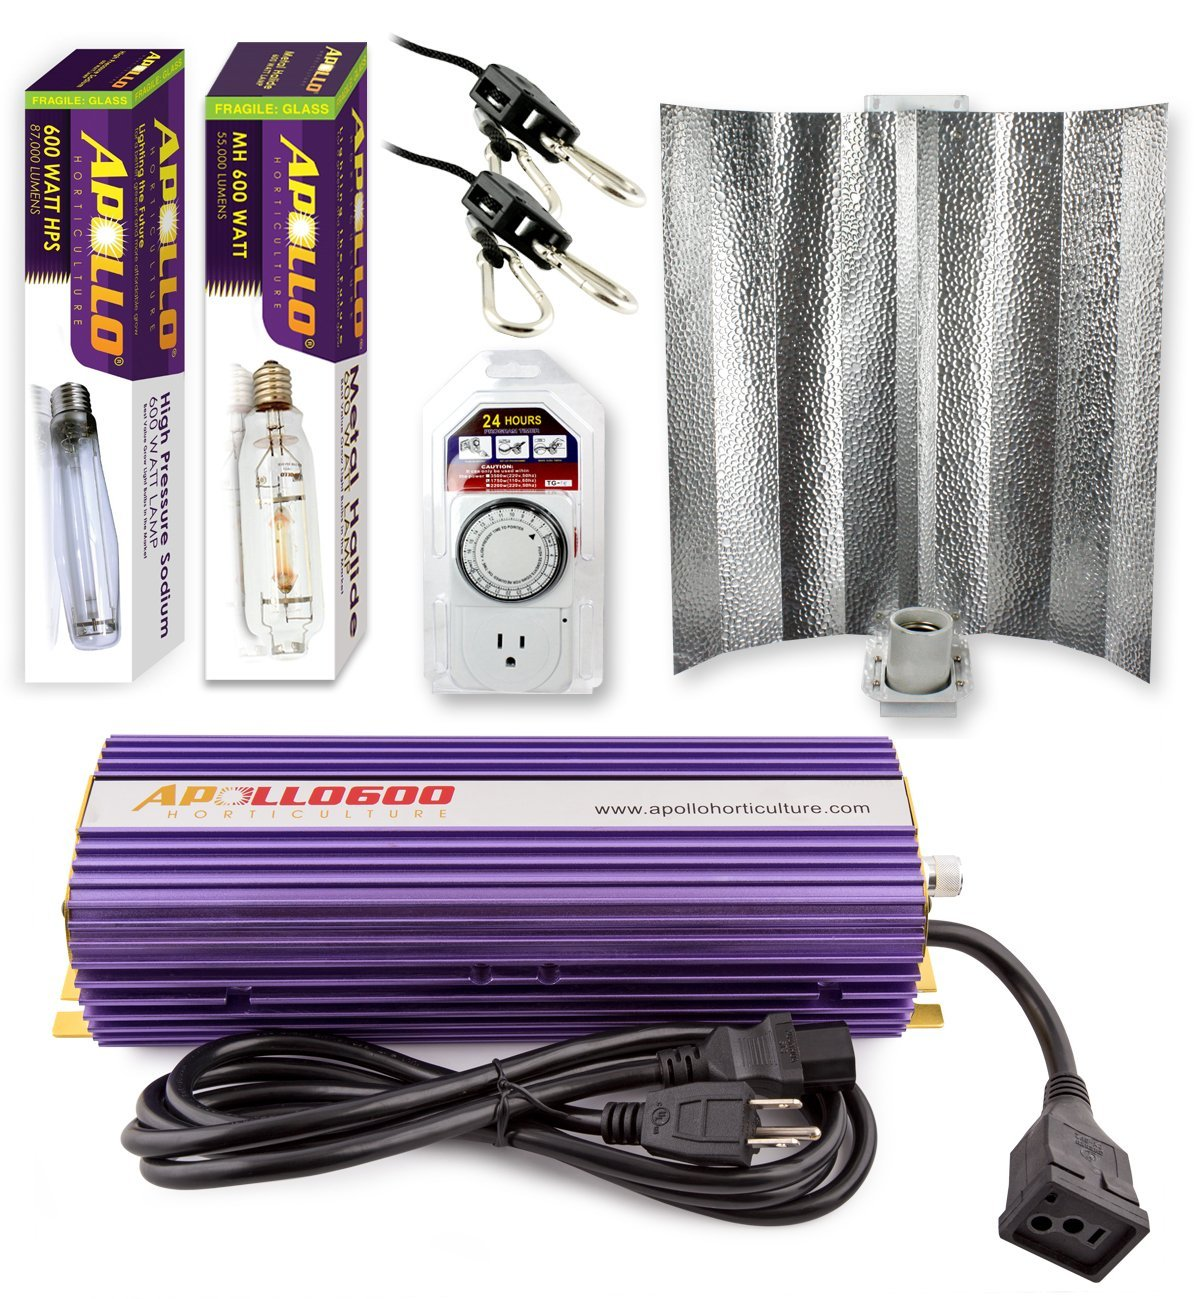 Apollo Horticulture 600 Watt Grow Light Digital Dimmable HPS MH System for Plants Gull Wing Hood Set